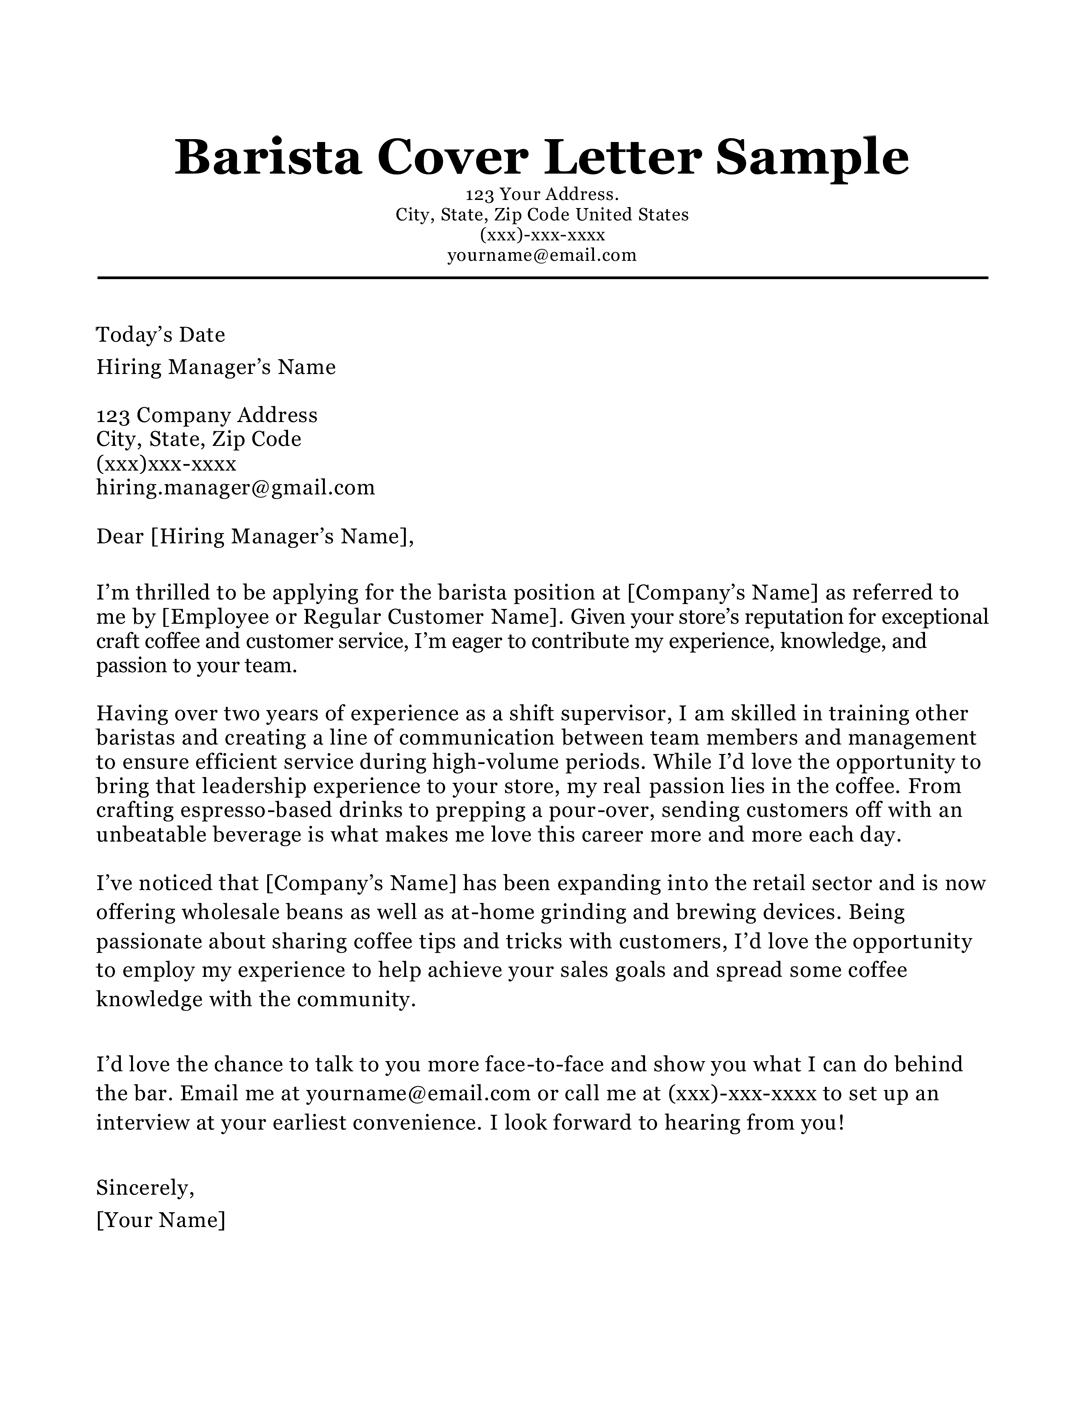 Barista Cover Letter Sample Writing Tips Resumecompanion